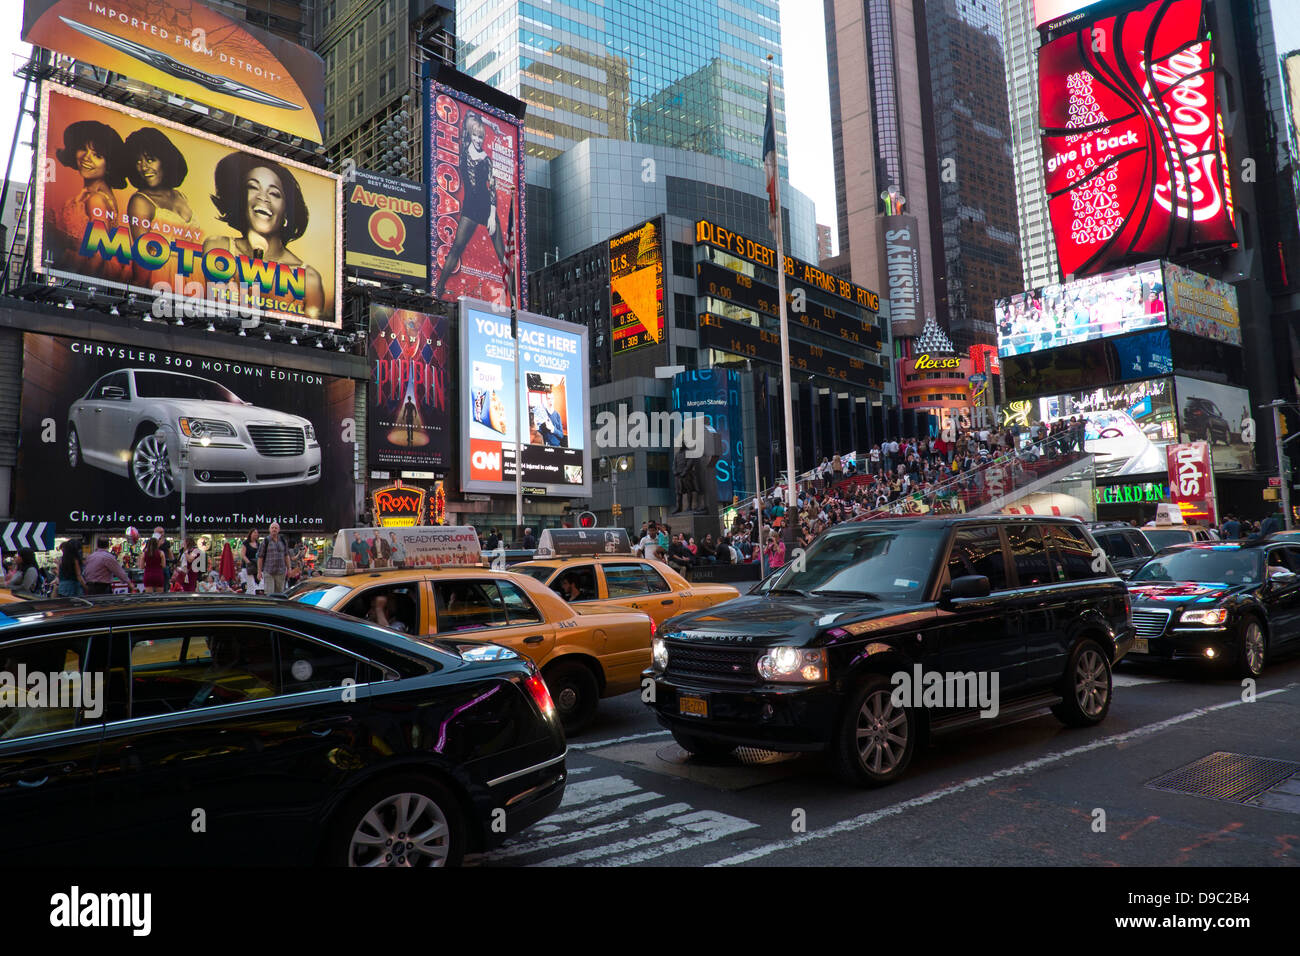 Times Square, Midtown, New York. - Stock Image